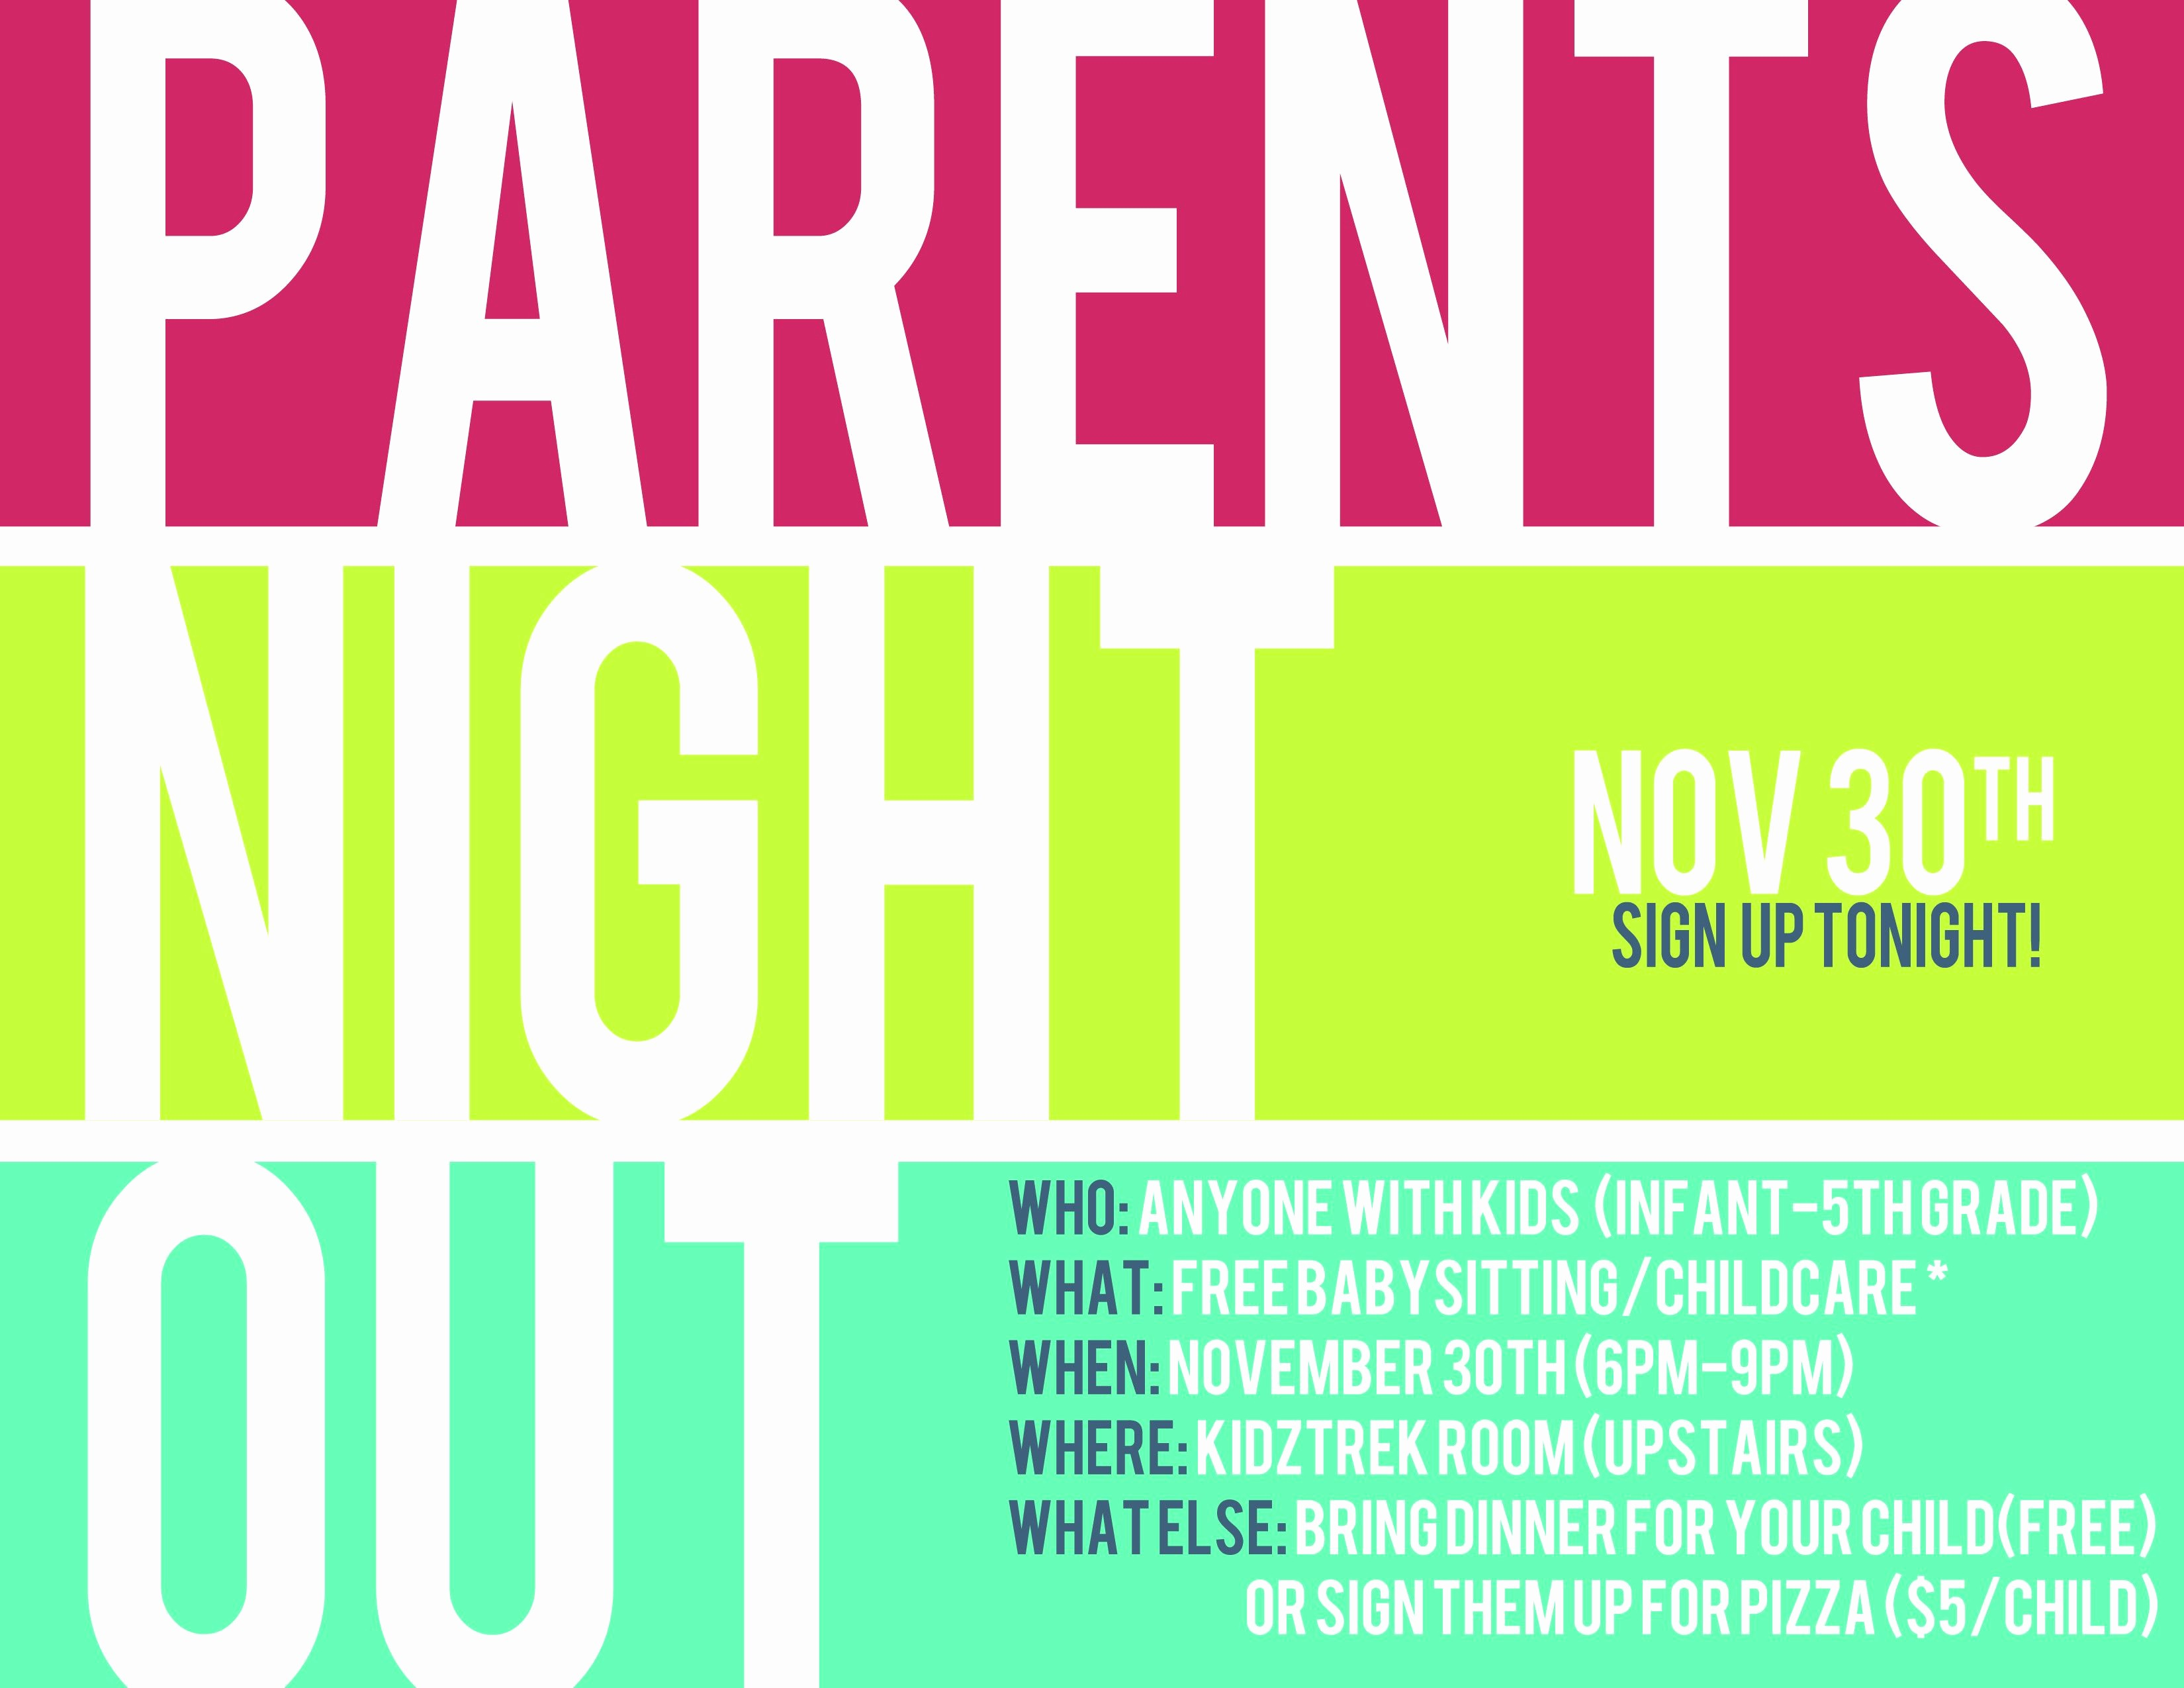 Family Fun Night Flyer Template Beautiful Parent Night Out Flyer Template Funf